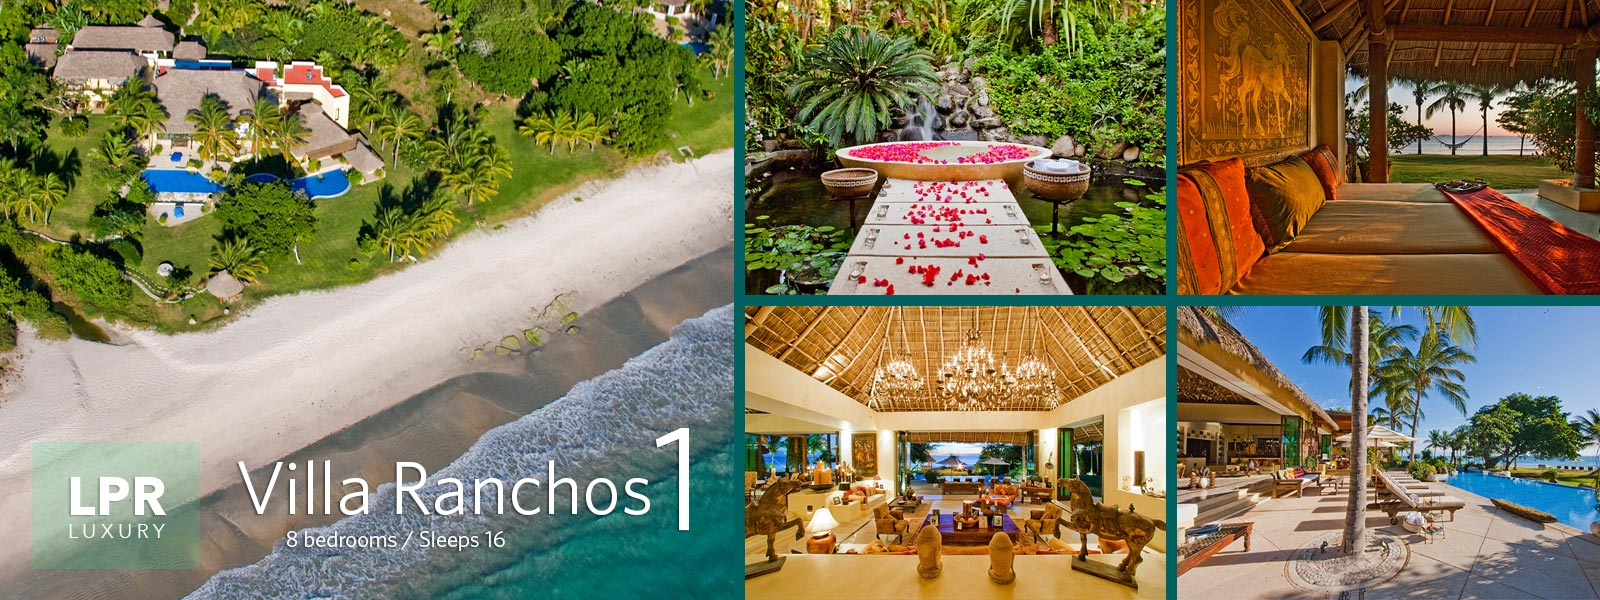 Villa Ranchos 1 - Luxury Punta Mita Real Estate and Vacation Rentals Villas